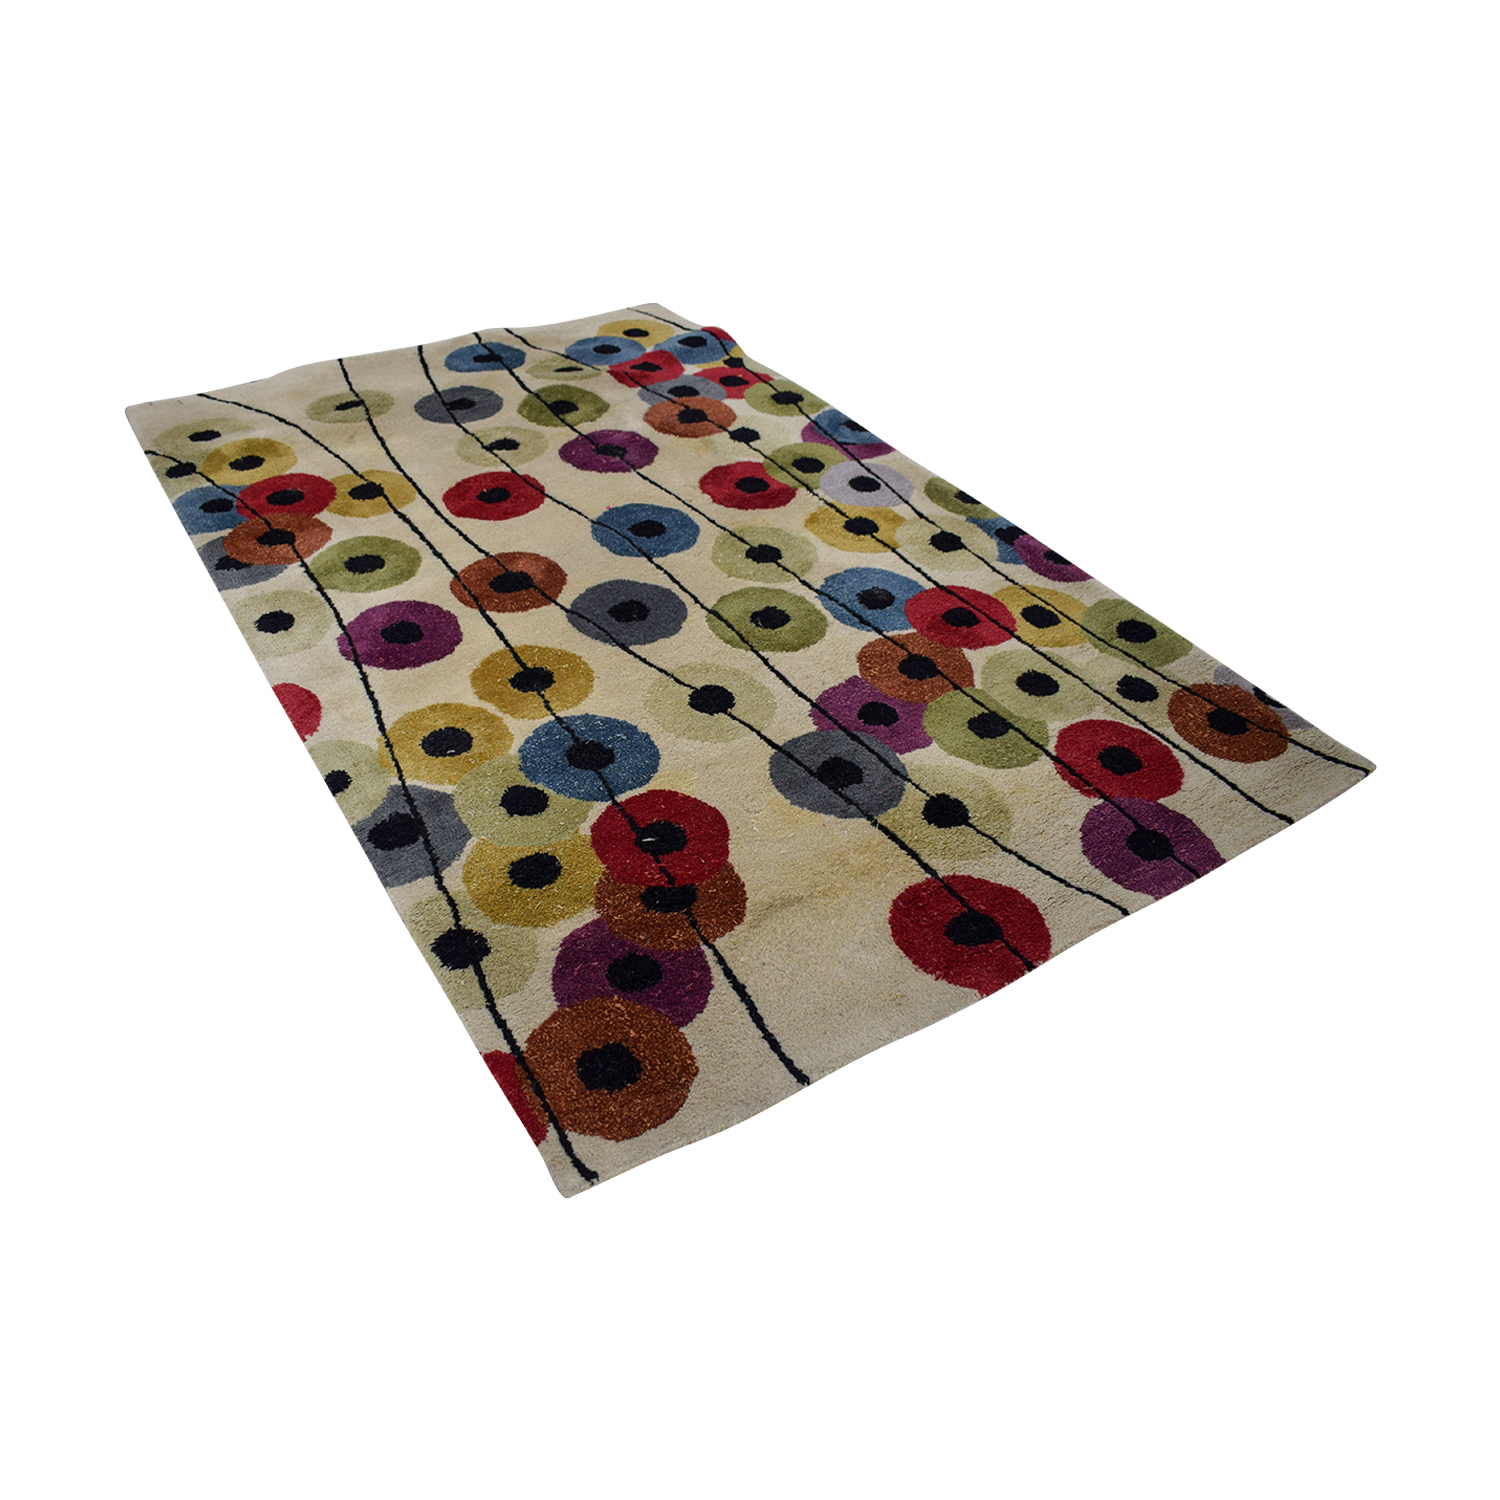 Crate & Barrel Crate & Barrel Conway Multi-Colored Rug Decor